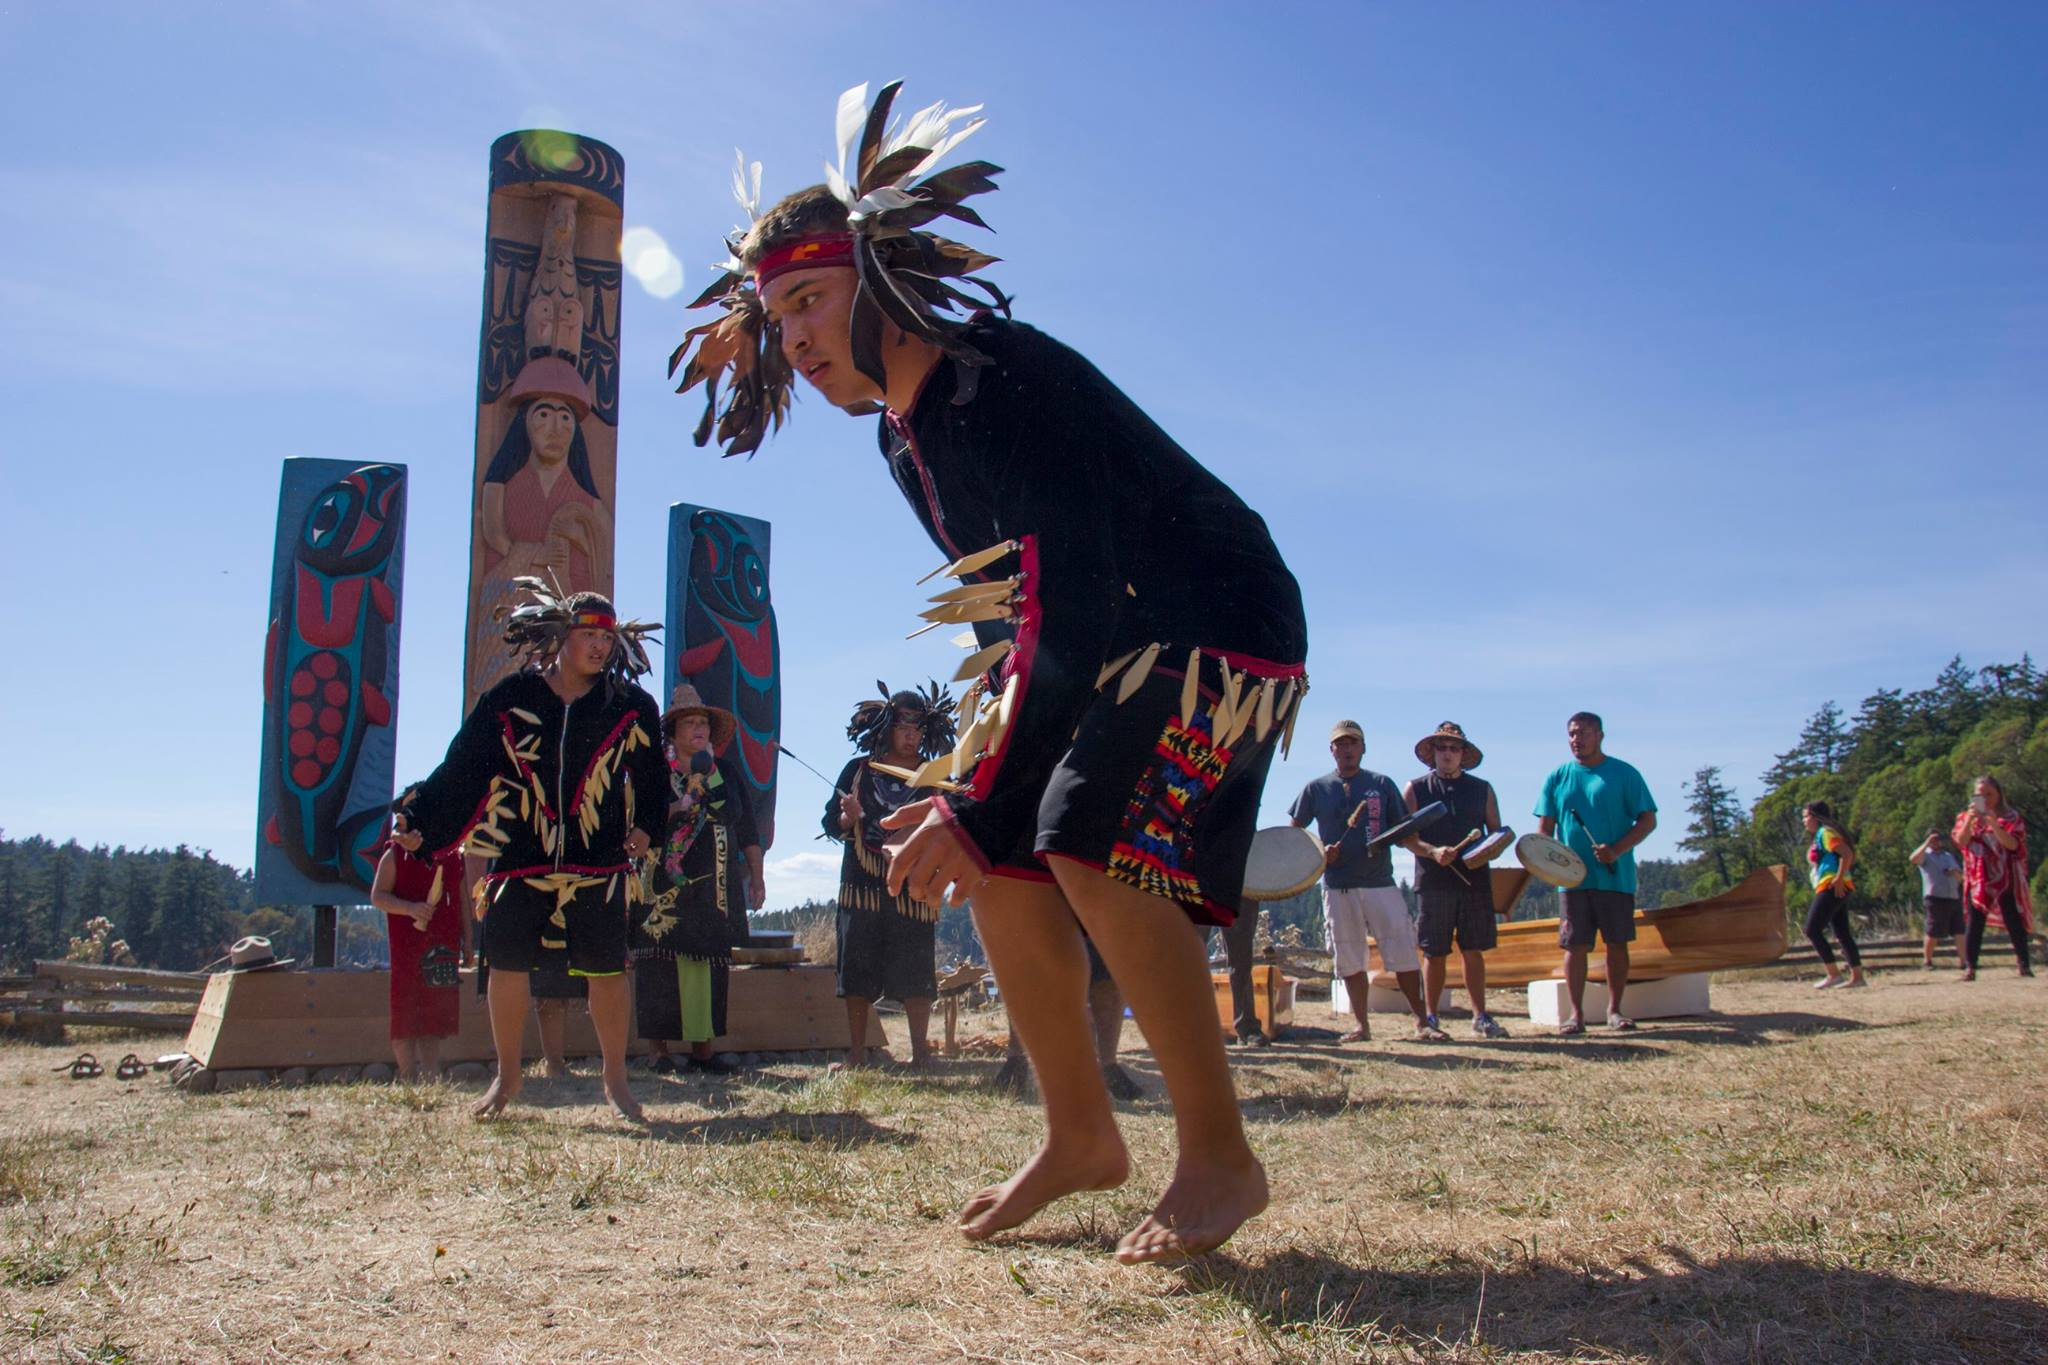 White House task force to address treaty issues in Washington